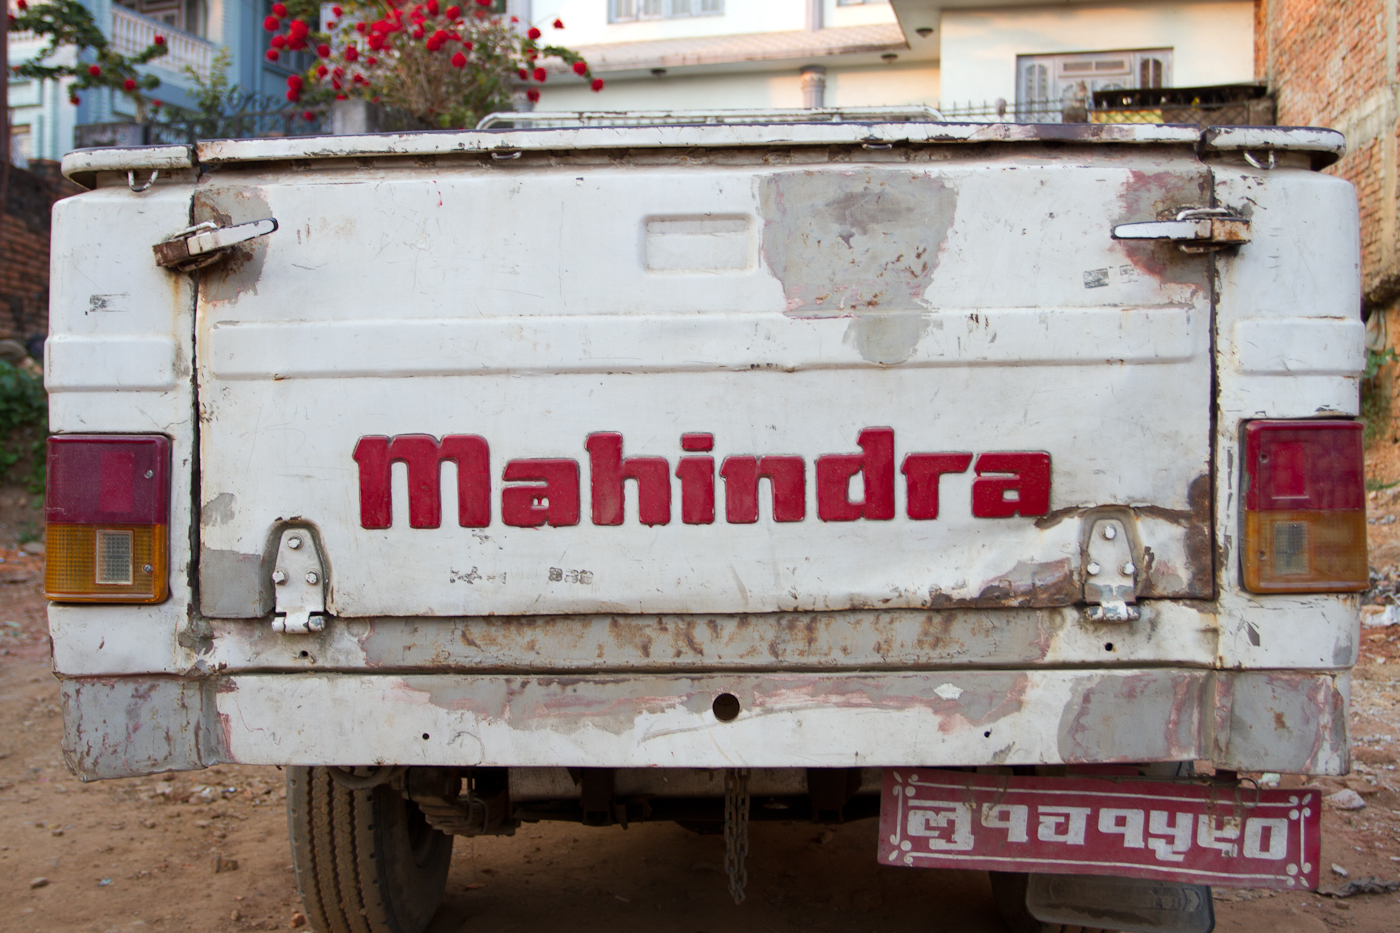 Mahindra, if it has an engine they make it